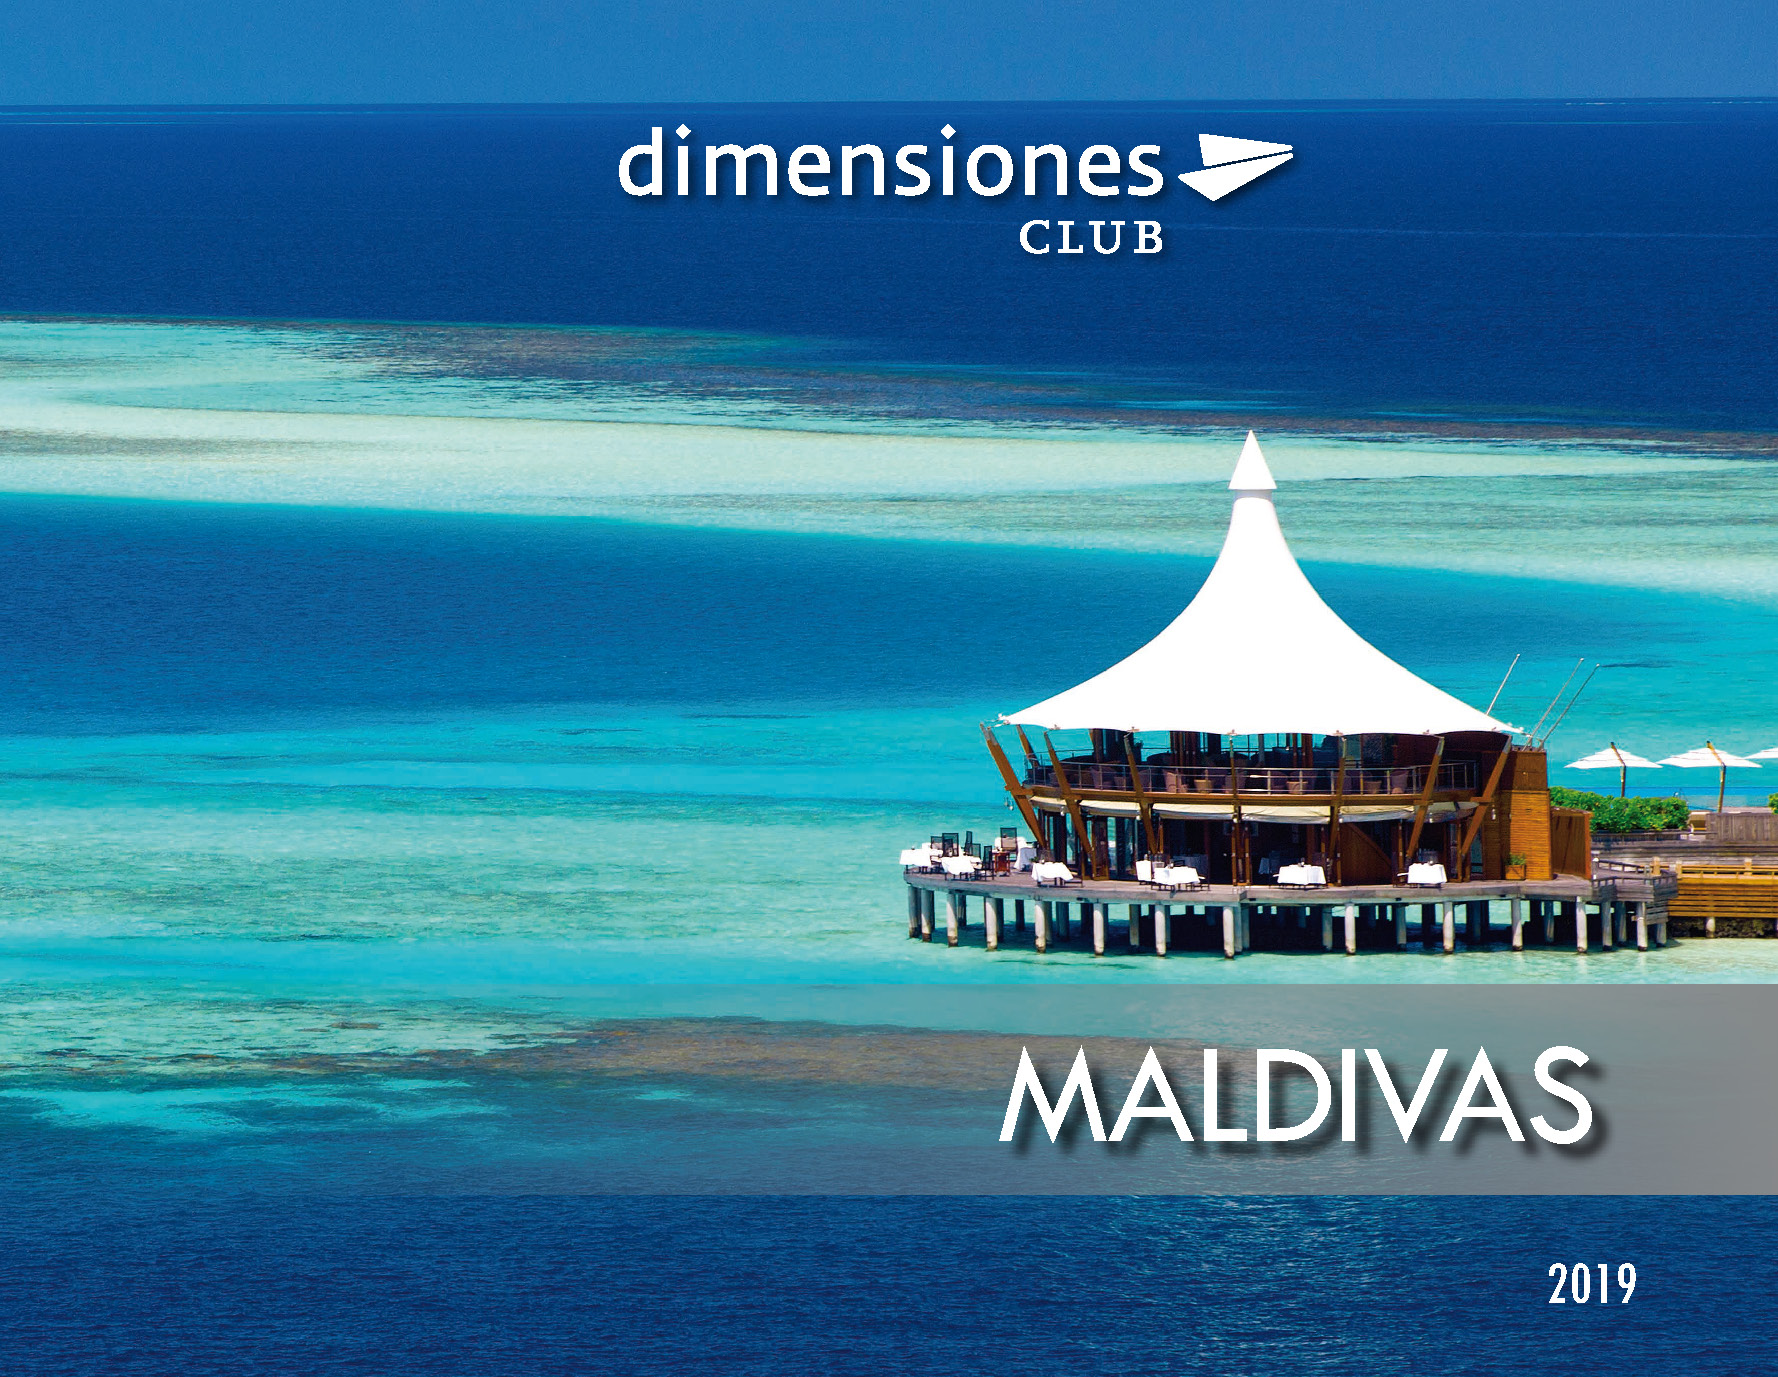 Catalogo Dimensiones Club Maldivas 2019